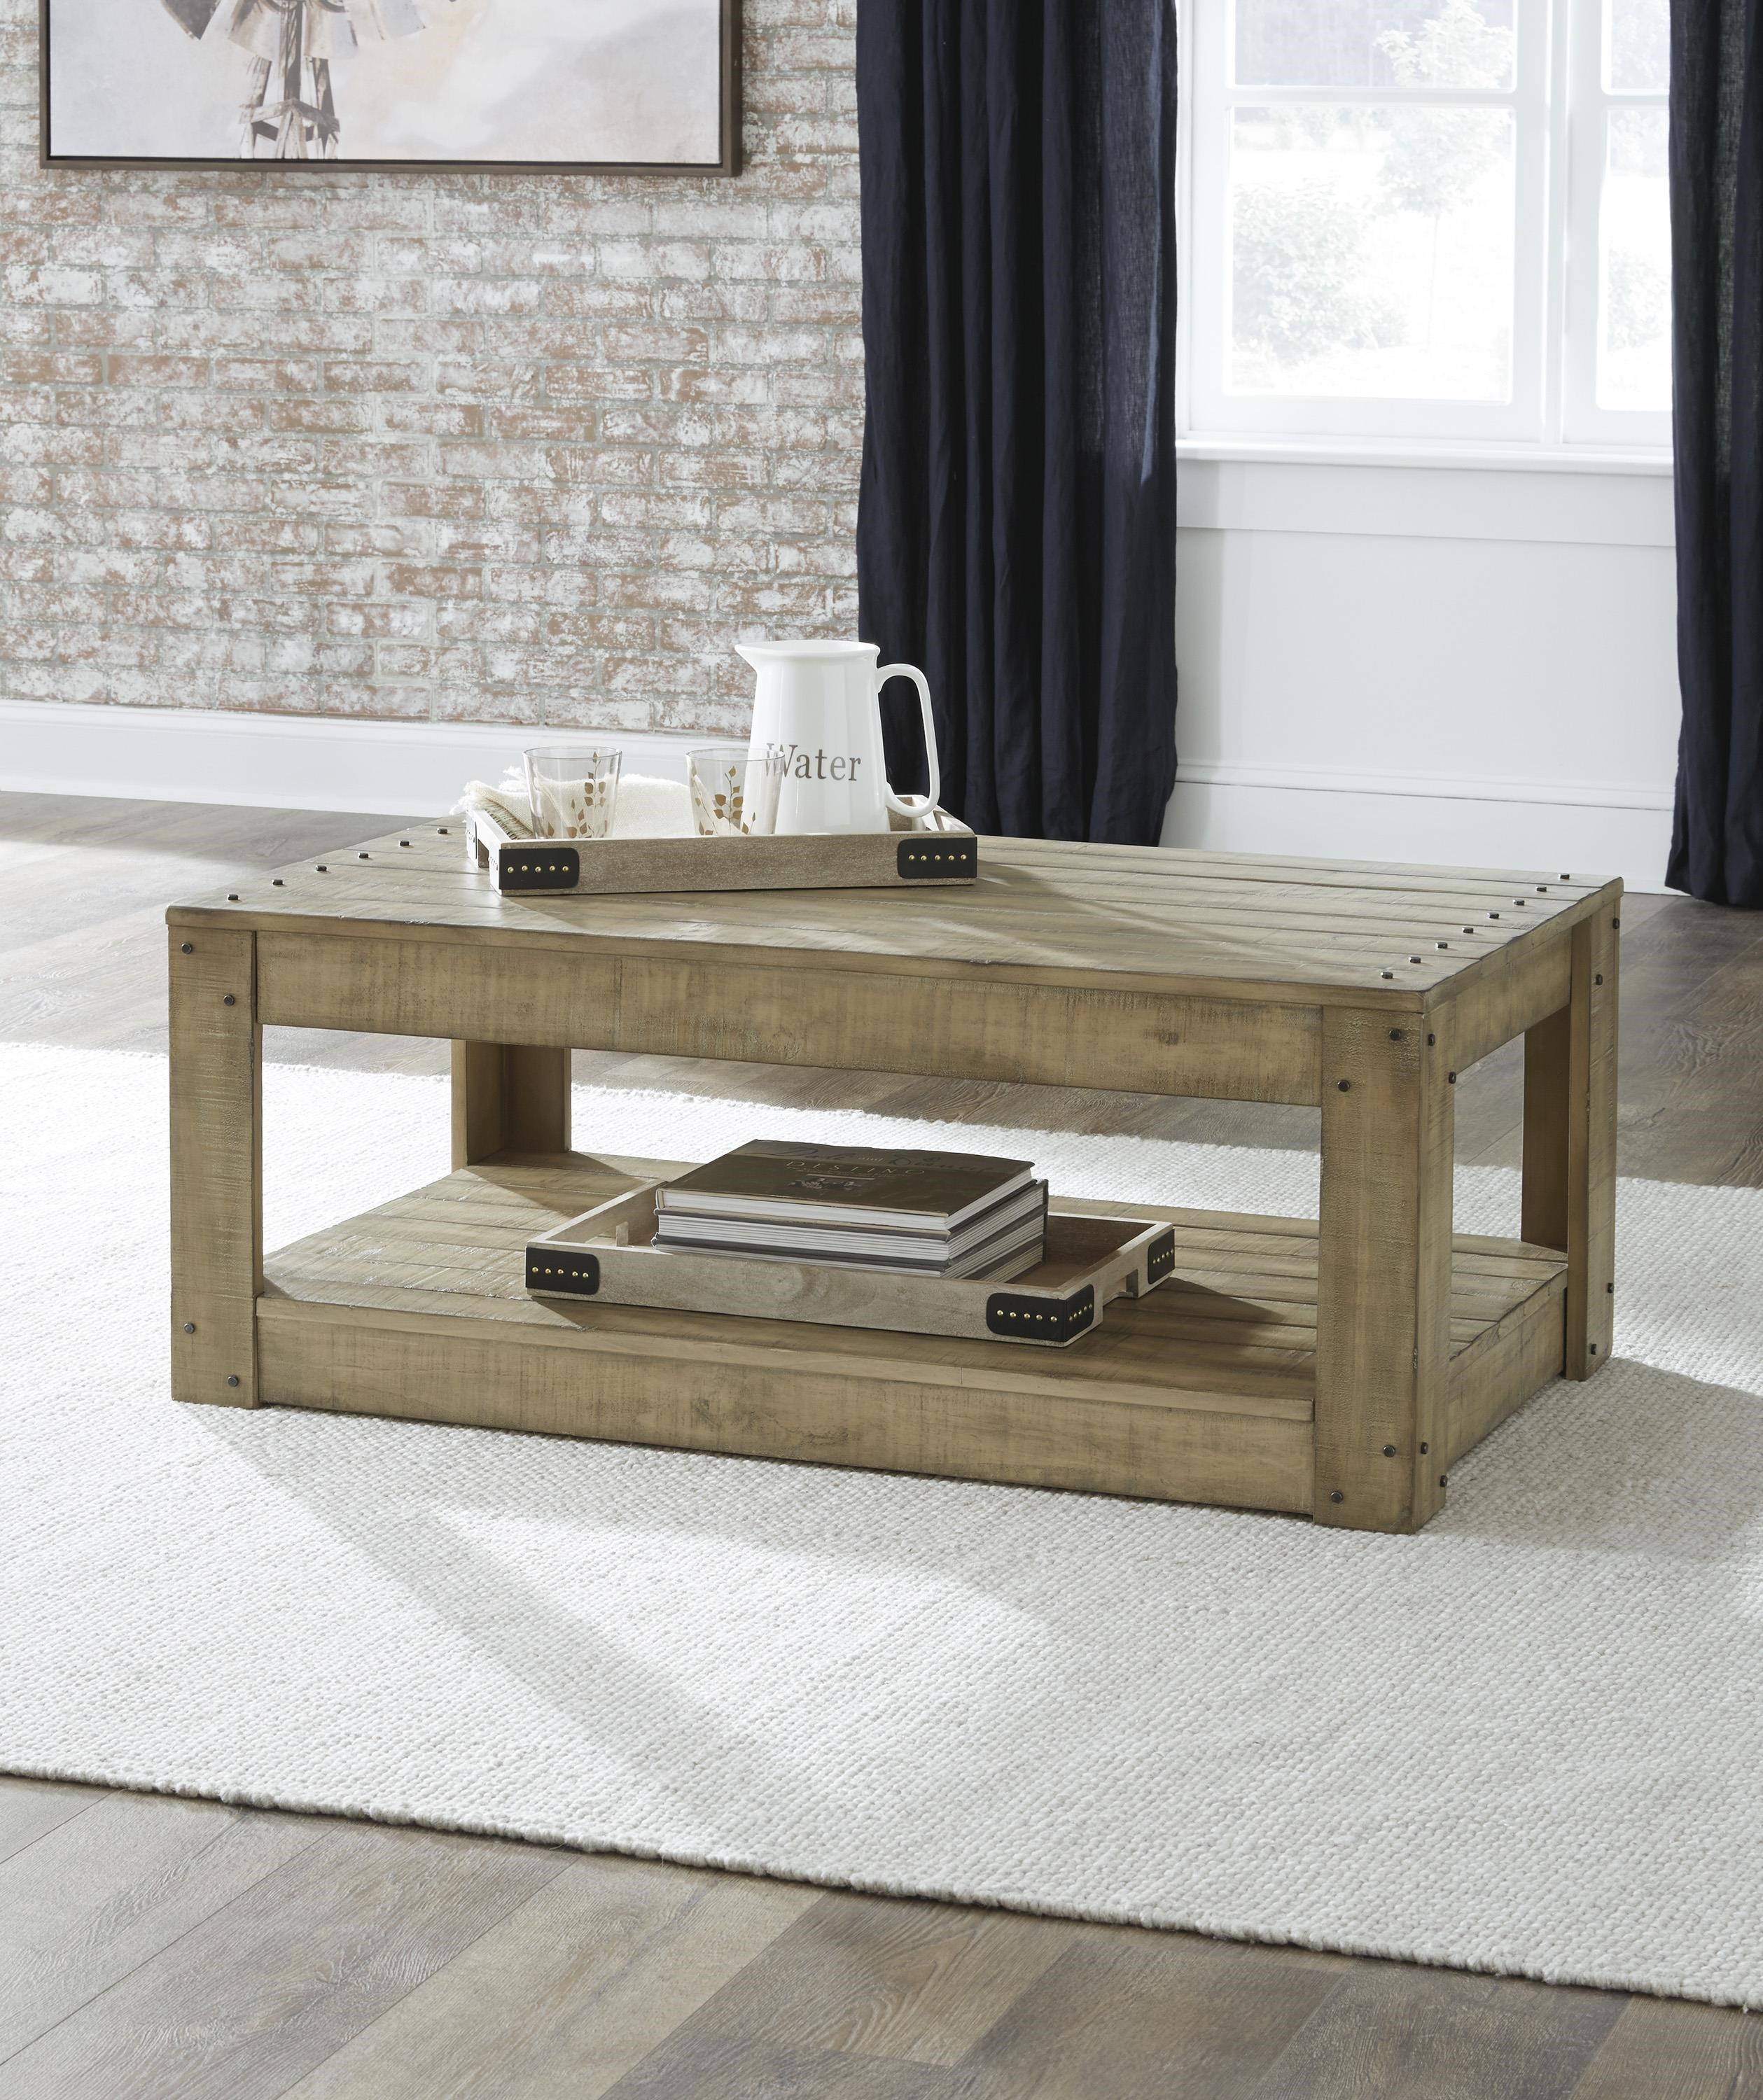 Lindalon 3 Piece Coffee Table Set by Signature Design by Ashley at Sam Levitz Furniture